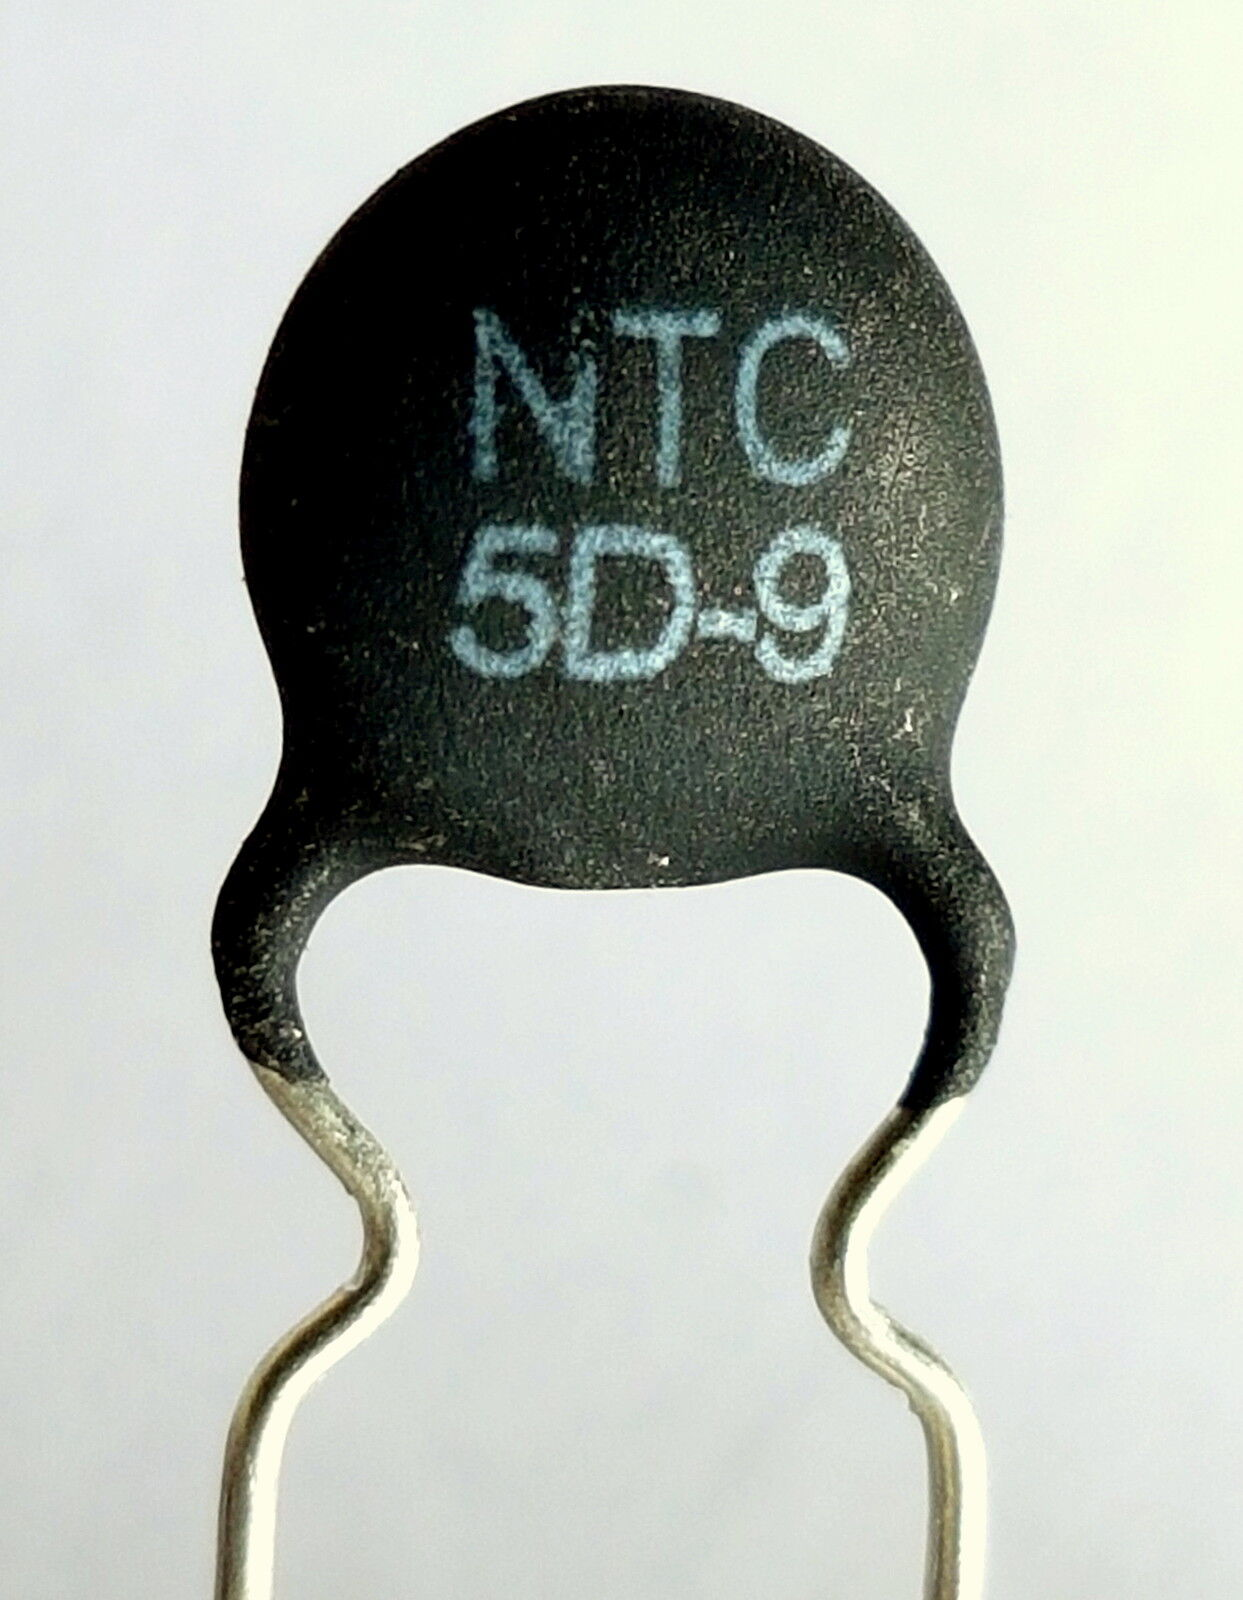 2 X Ntc 5d 9 Inrush Current Limiter Power Thermistor 5 Ohm 3amp Selection Criteria Steady State 1 Of See More